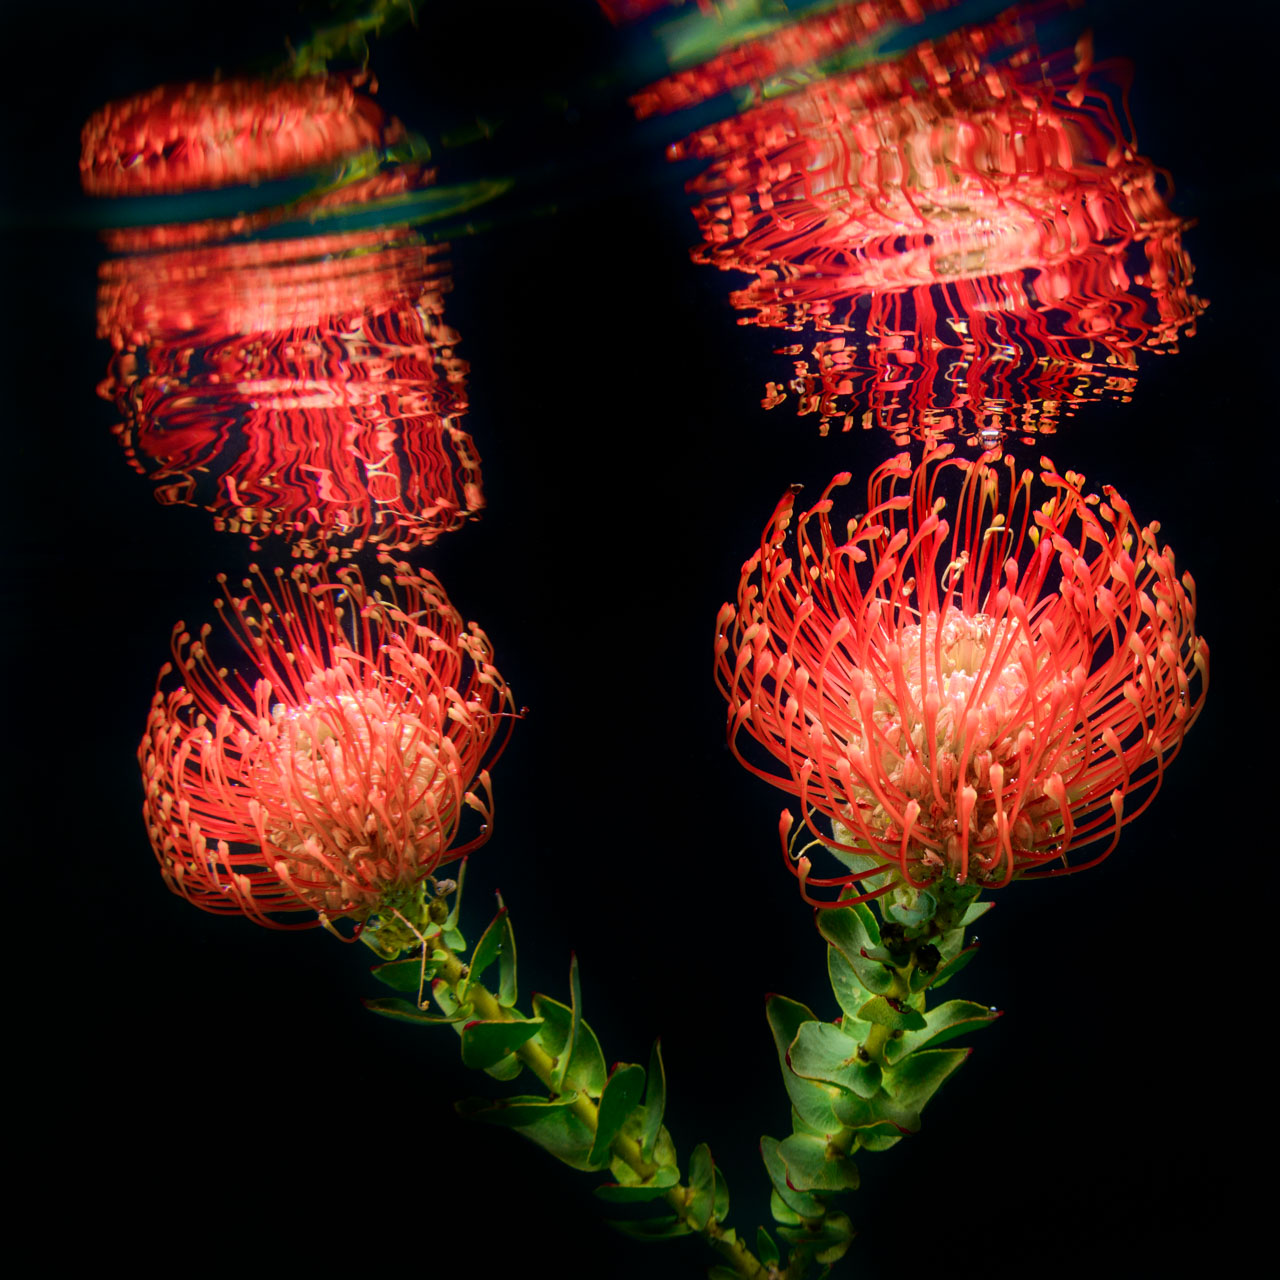 Pin Cushion Protea Flower image taken underwater